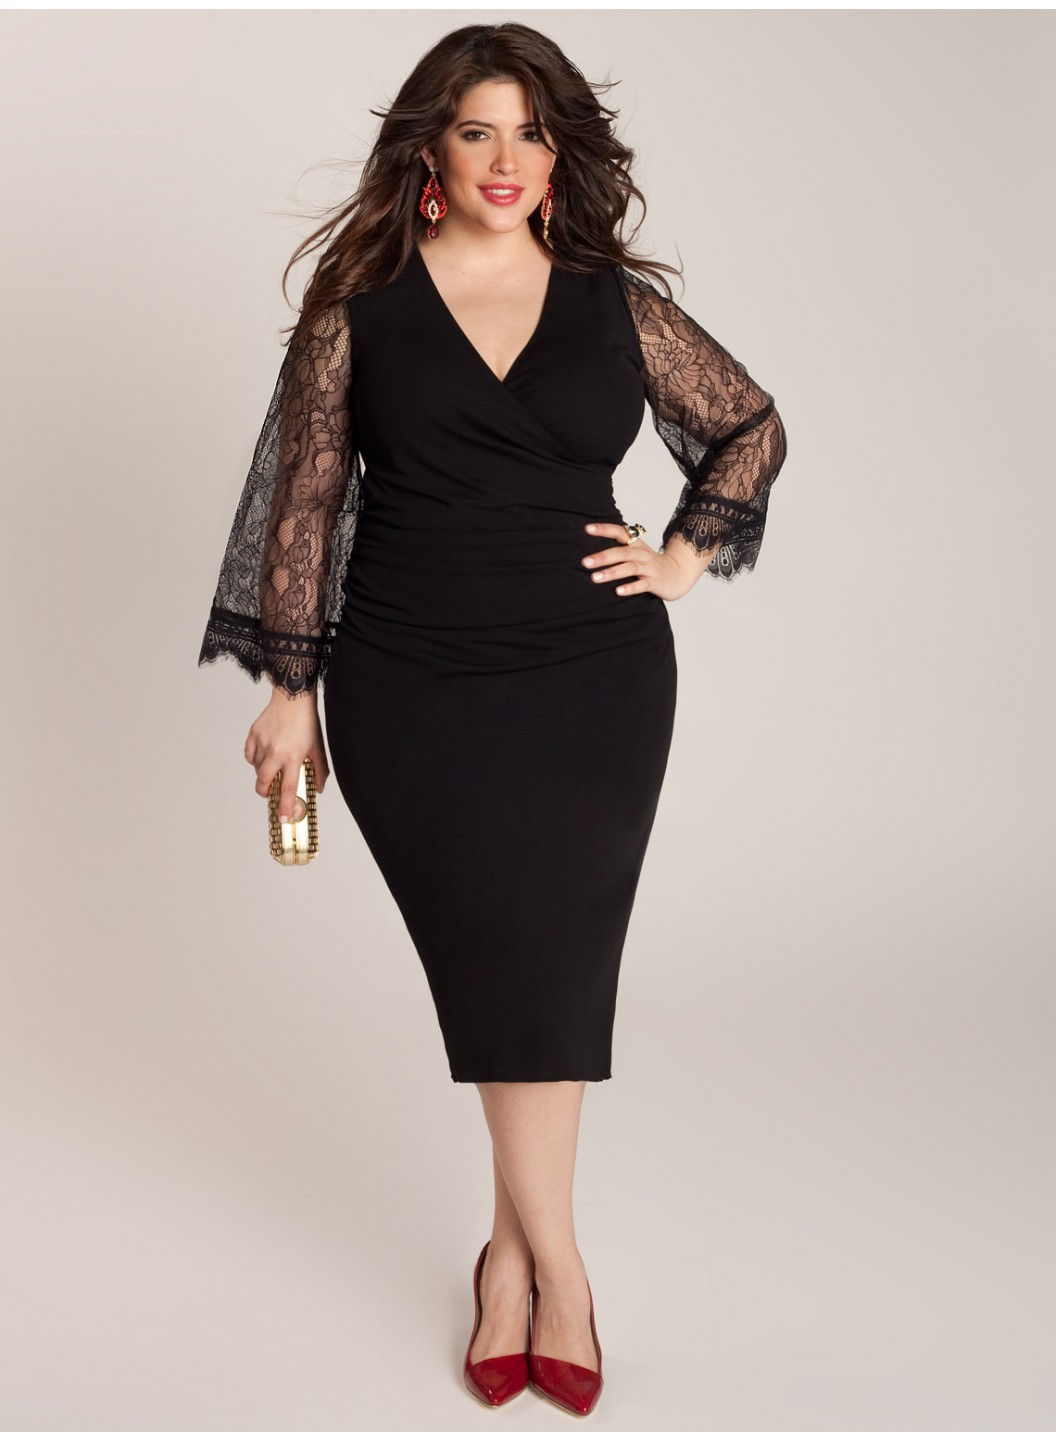 Shop our online boutique for the perfect plus size boutiques, trendy and affordable ladies top, dress, pants, jewelry, purses and accessories. Sizes , shipping to your door.